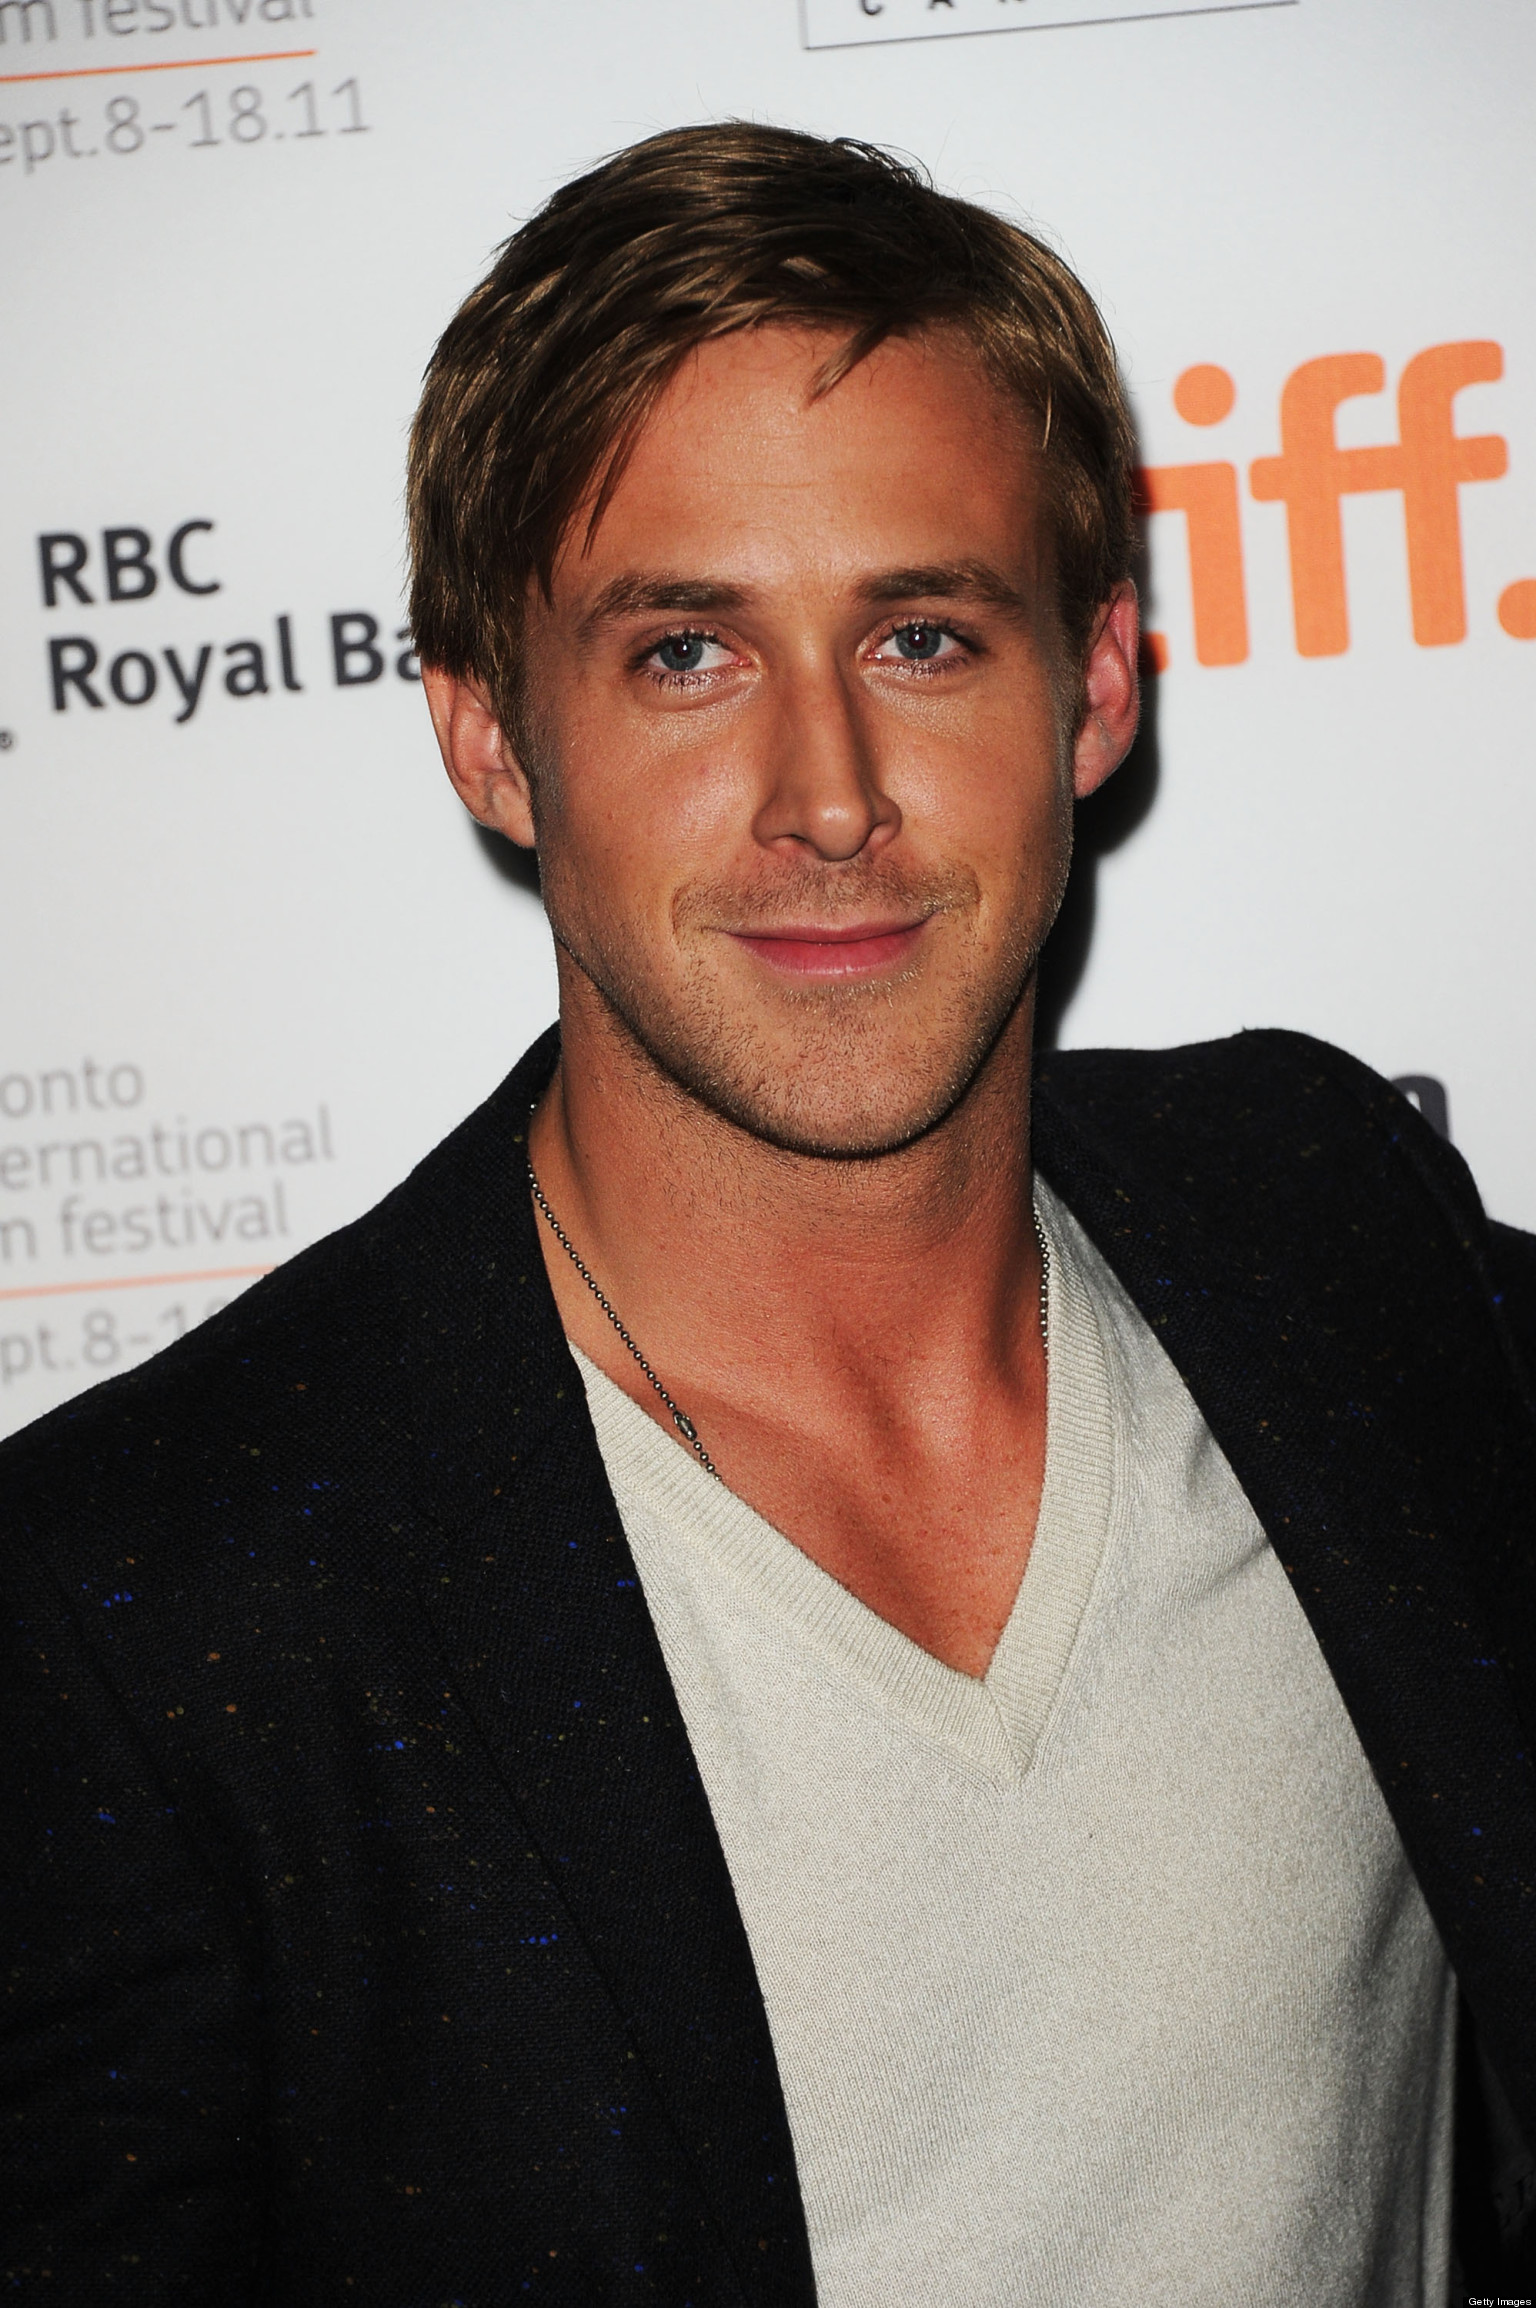 Ryan Gosling Christian Bale Steve Carell Cover New York: Ryan Gosling & Mickey Mouse Club: Actor Used To Sing With